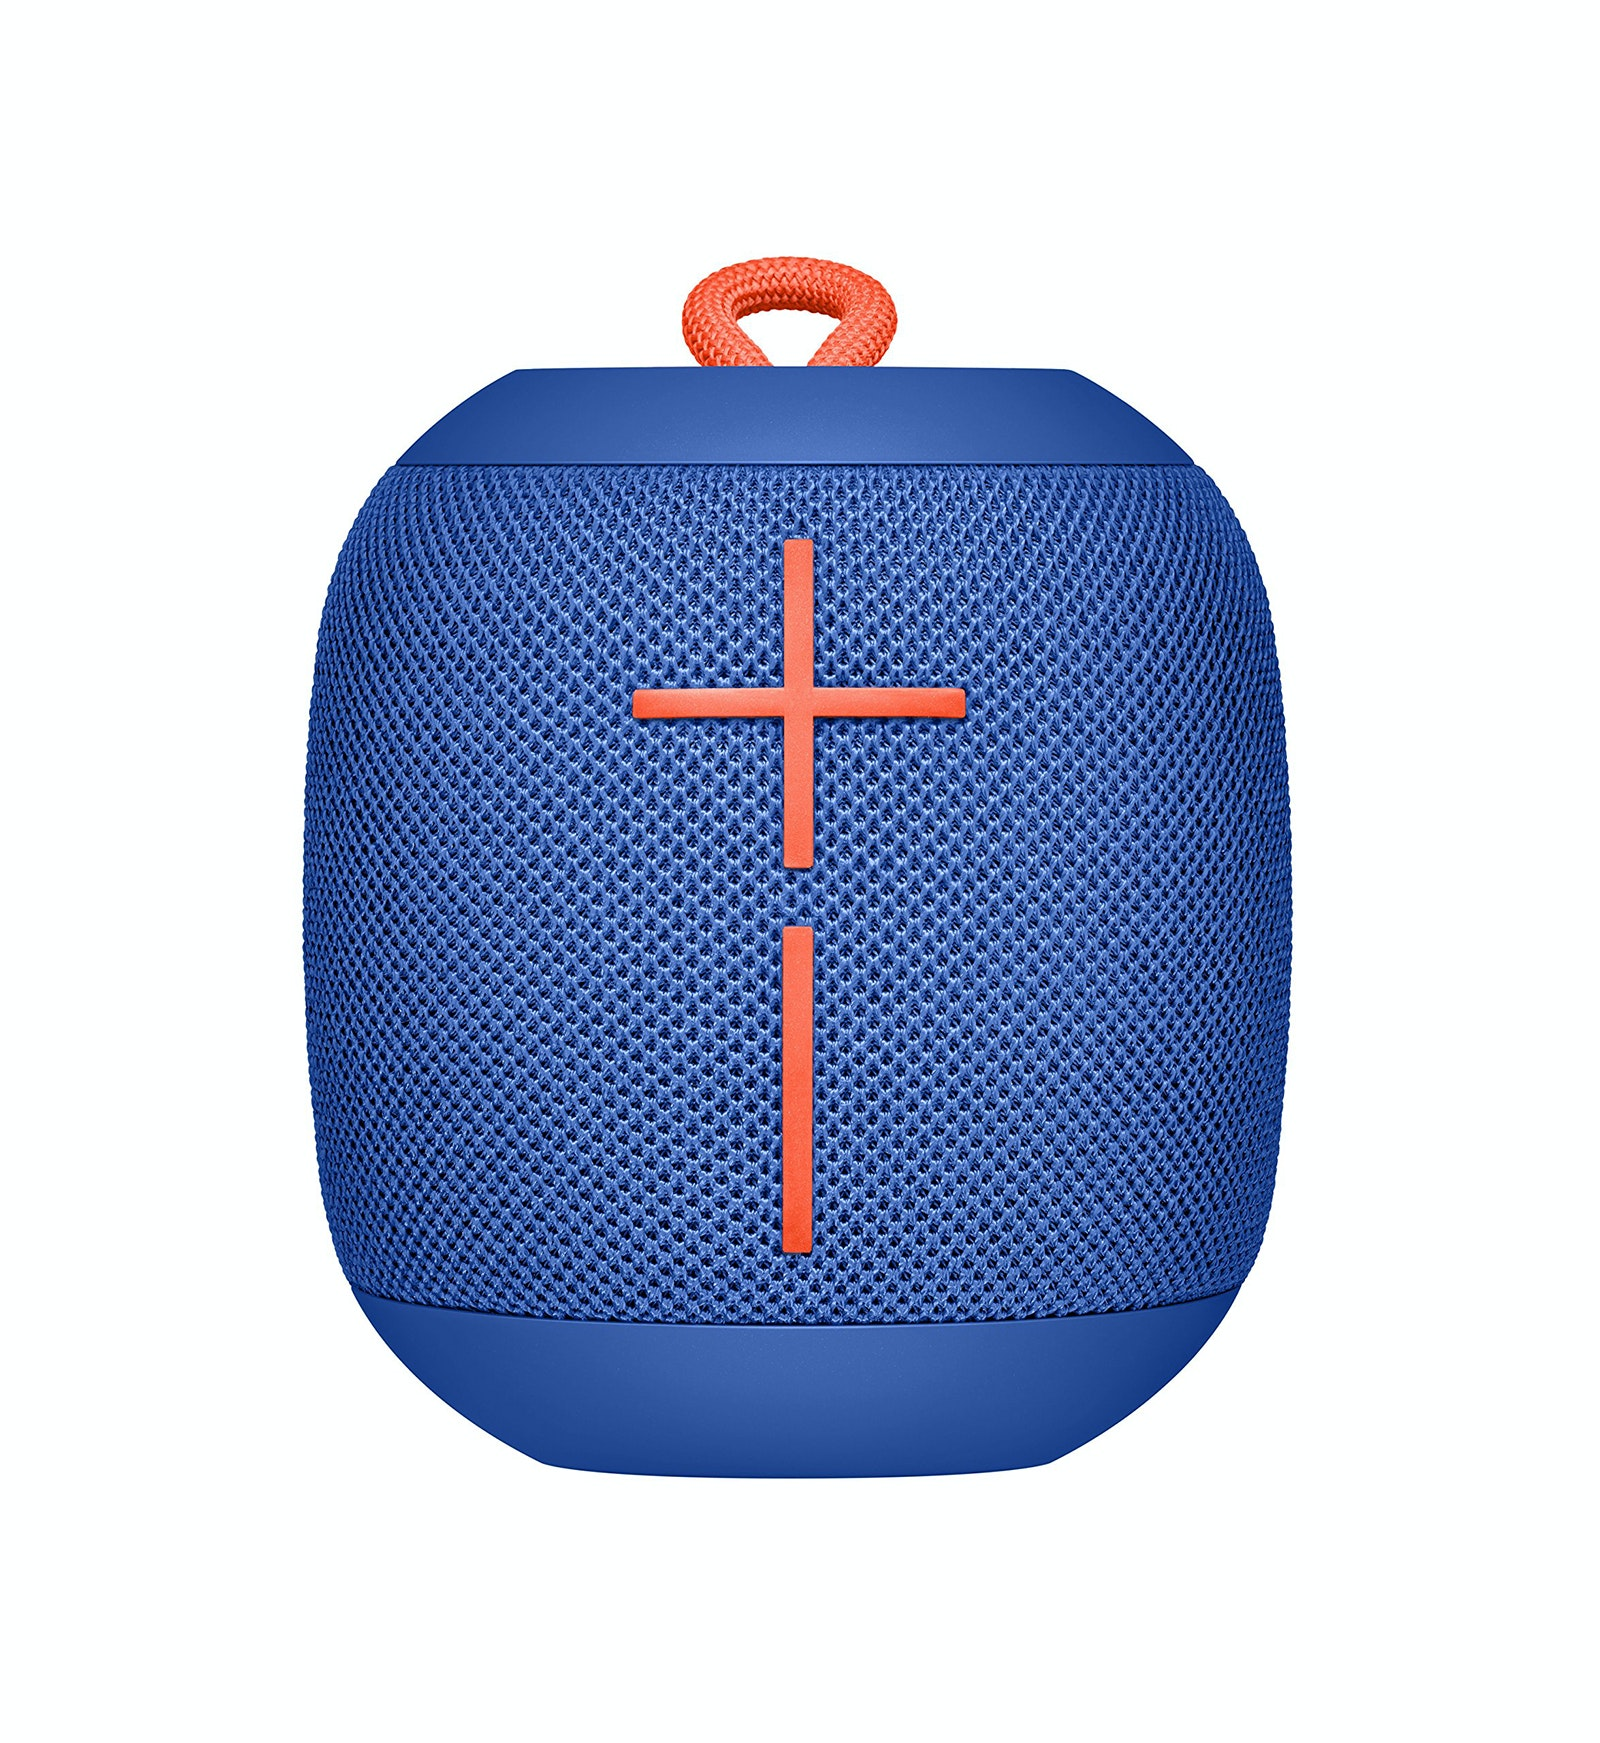 The waterproof Ultimate Ears Wonderboom speaker lets you bring your tunes right to the sand.